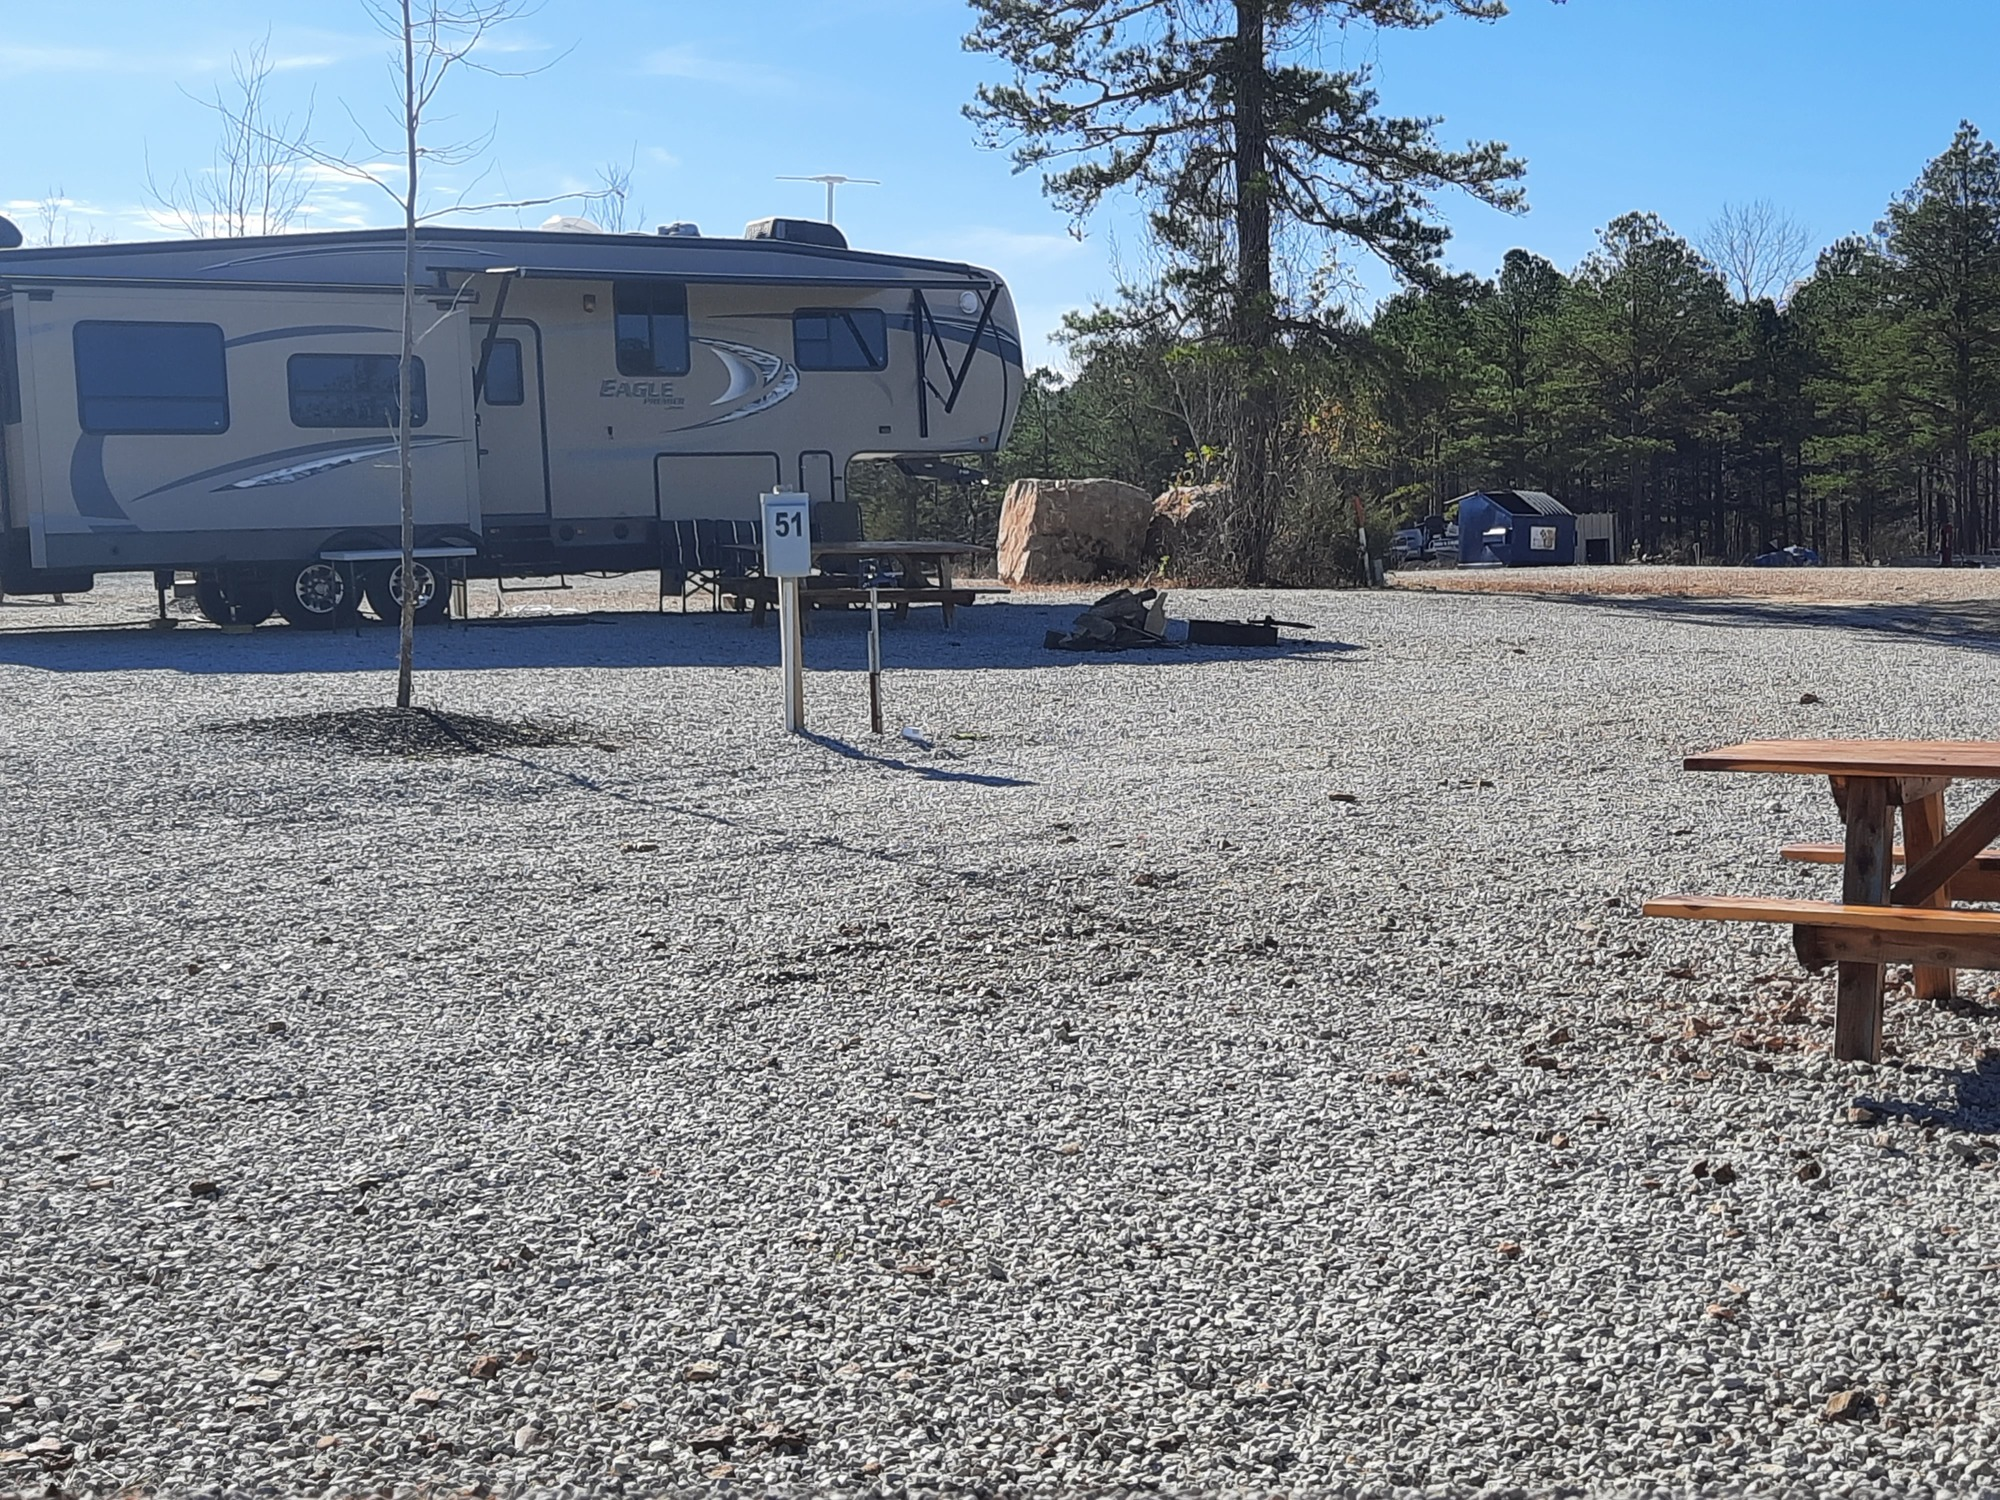 Image for RV Site 51